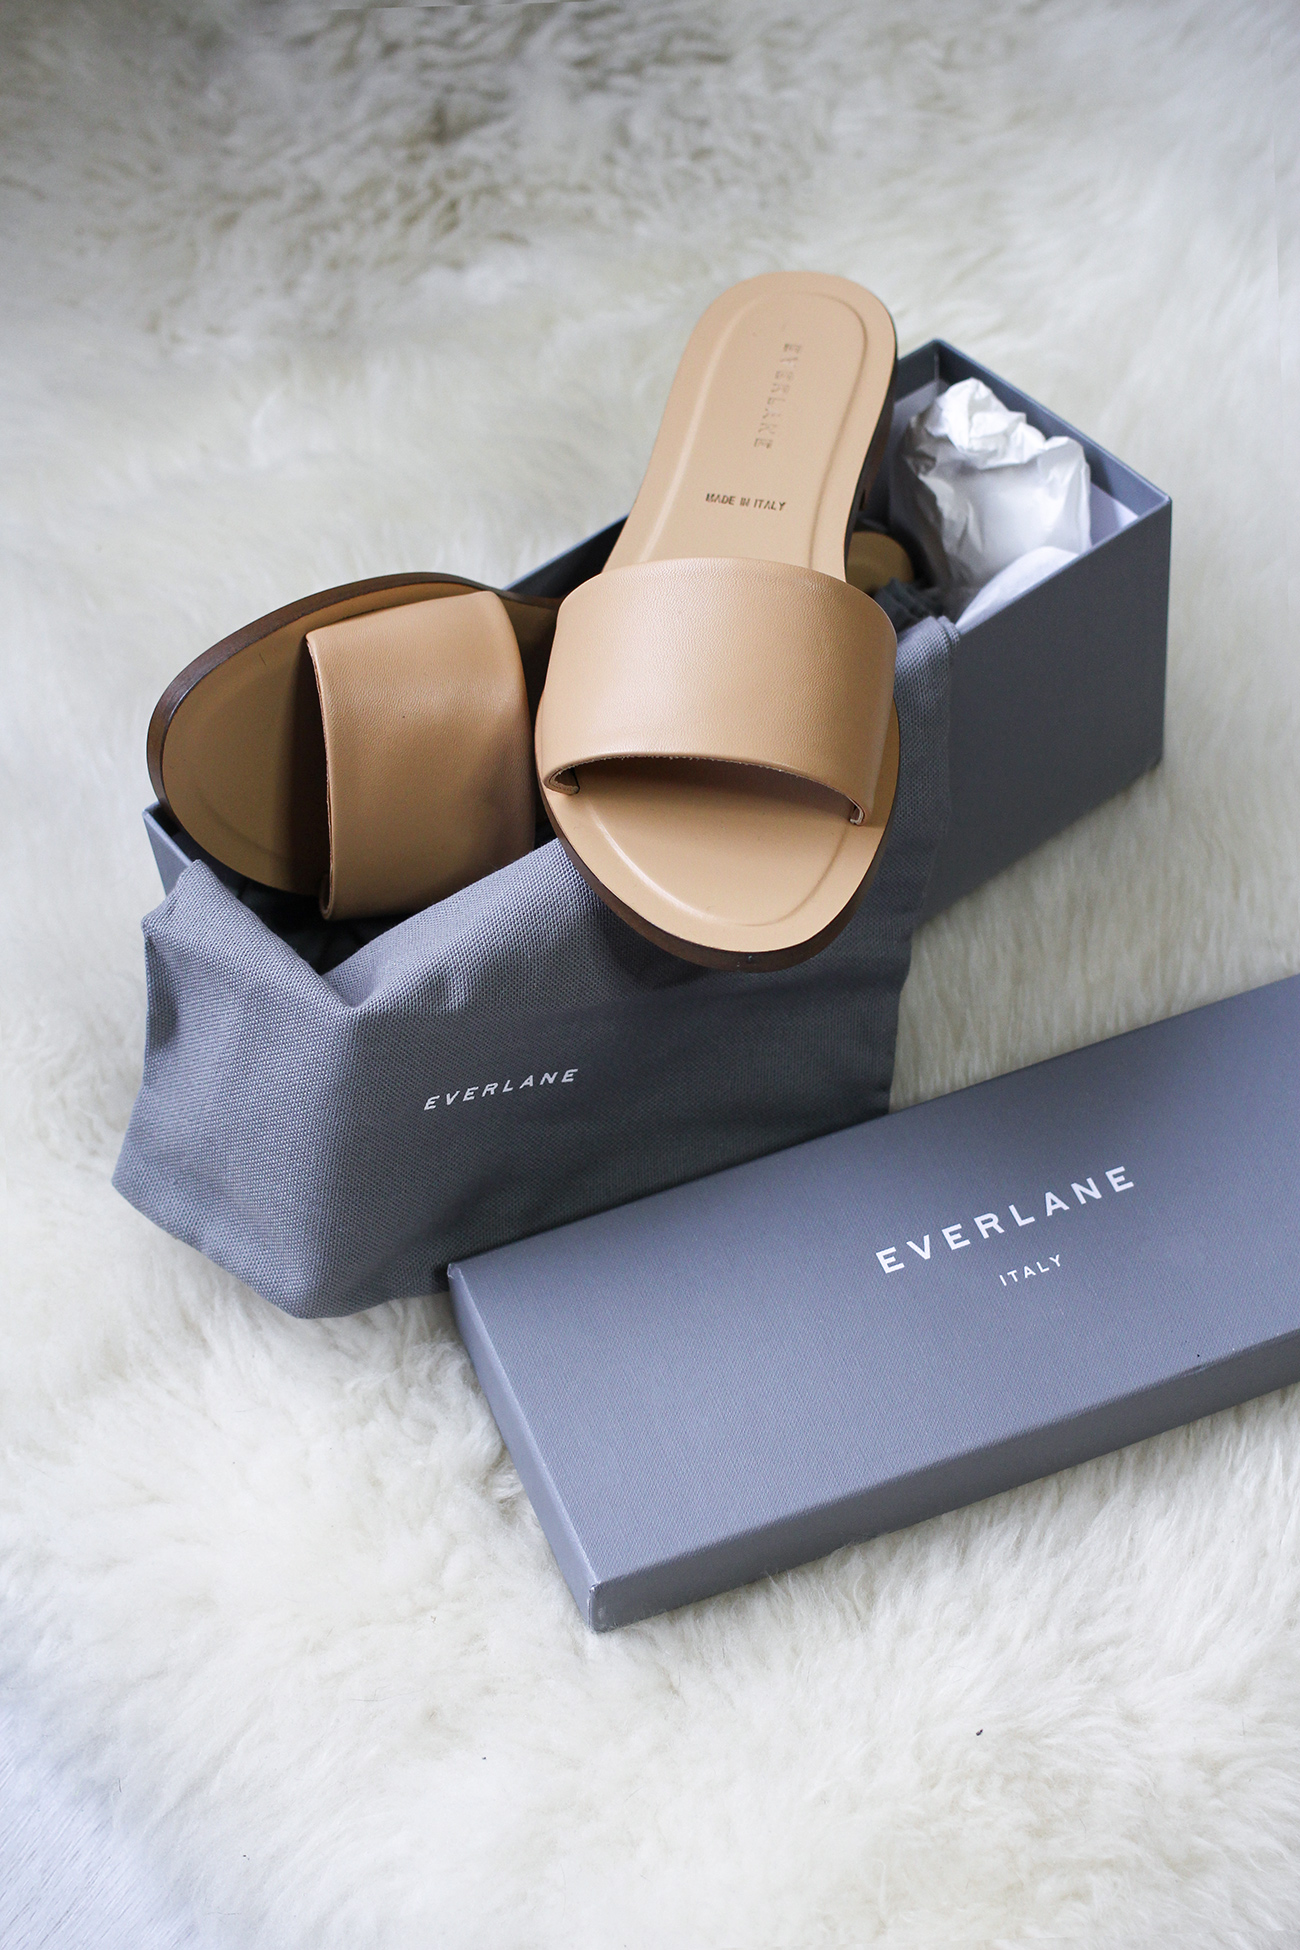 everlane elevate summer slide sandal review